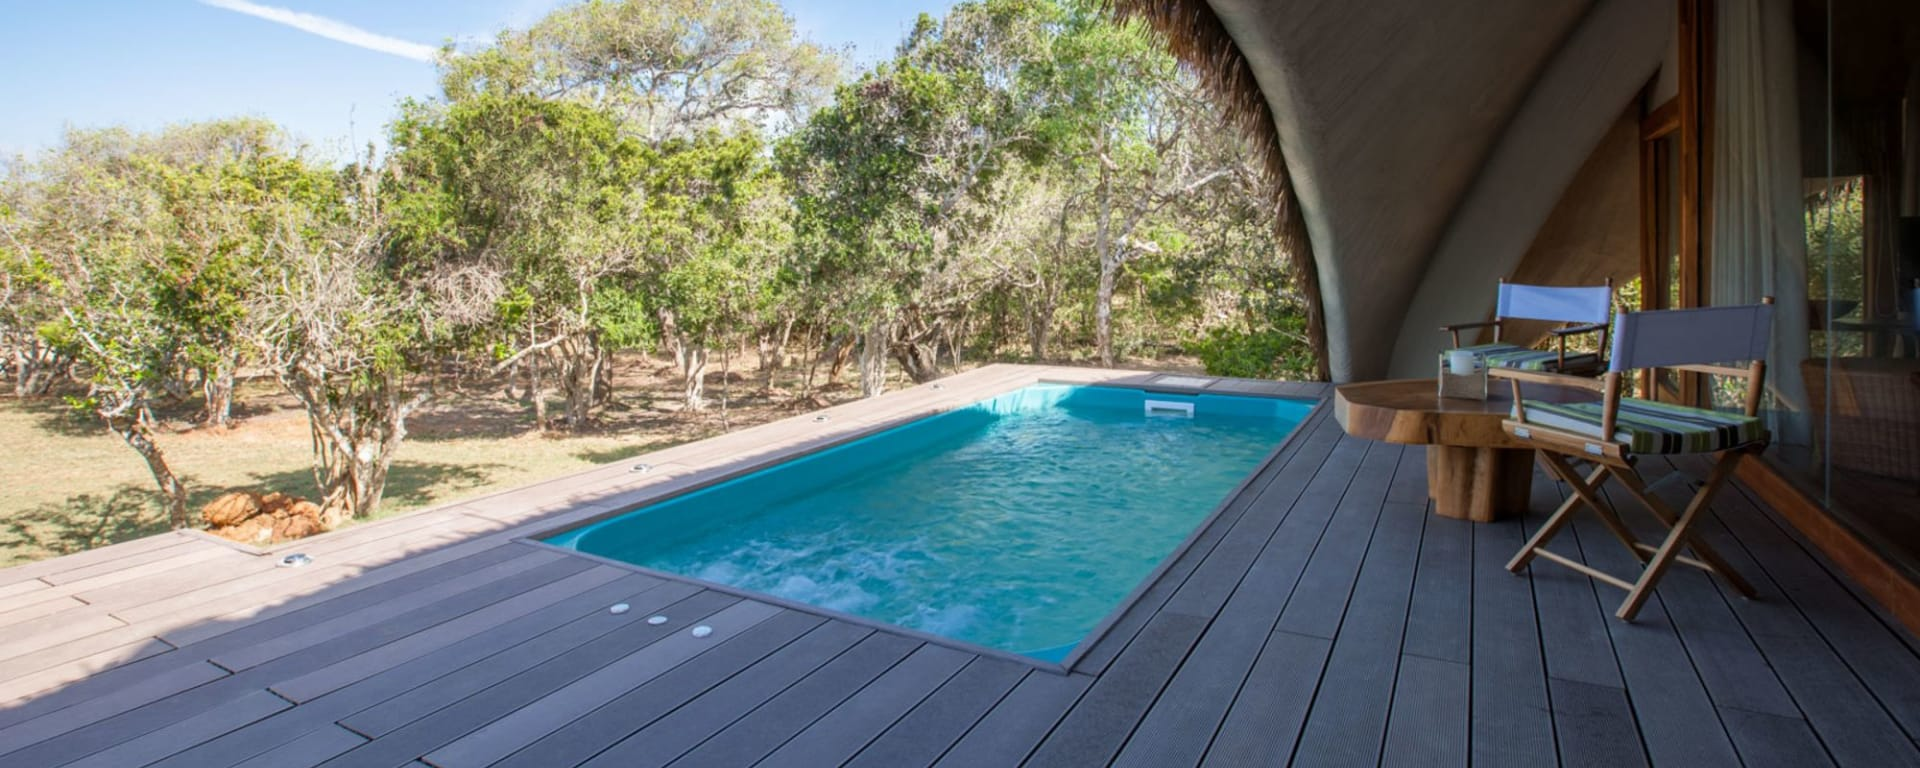 Yala Nationalpark Safari - Chena Huts - 3 Tage ab Colombo: room: Plunge Pool and Deck of Cabin